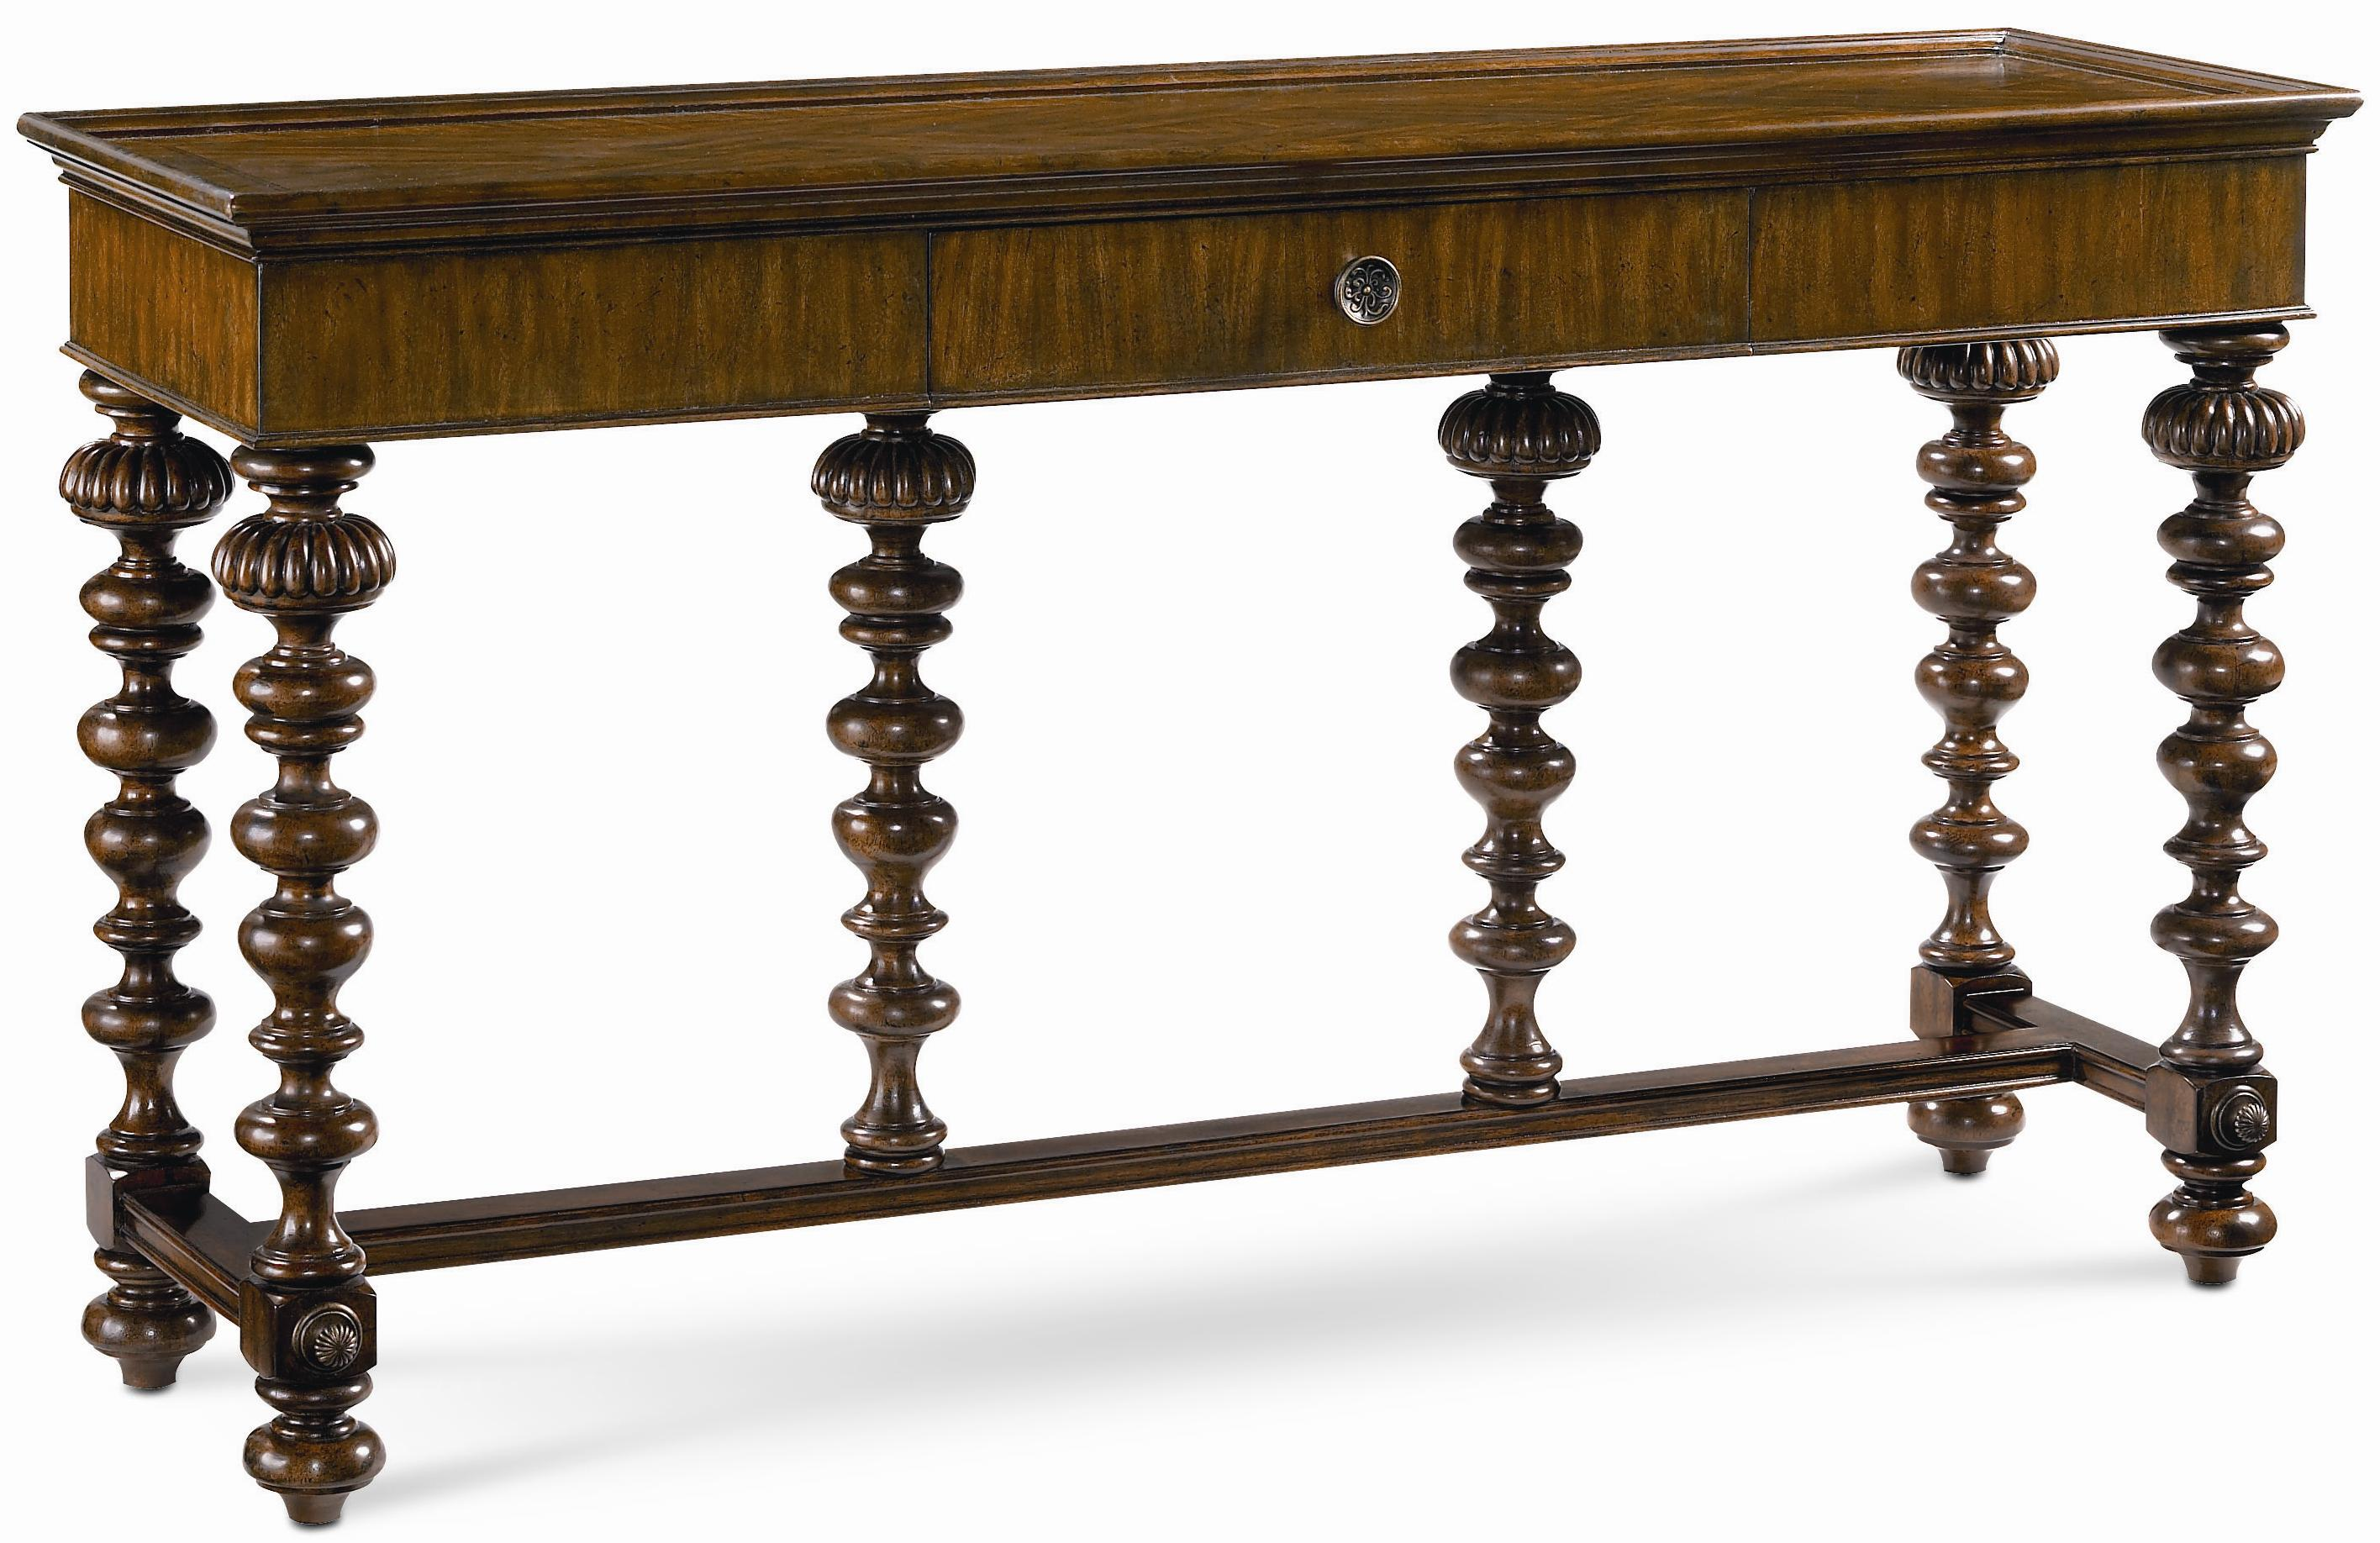 Thomasville Ernest Hemingway 720 Basque Sofa Table w